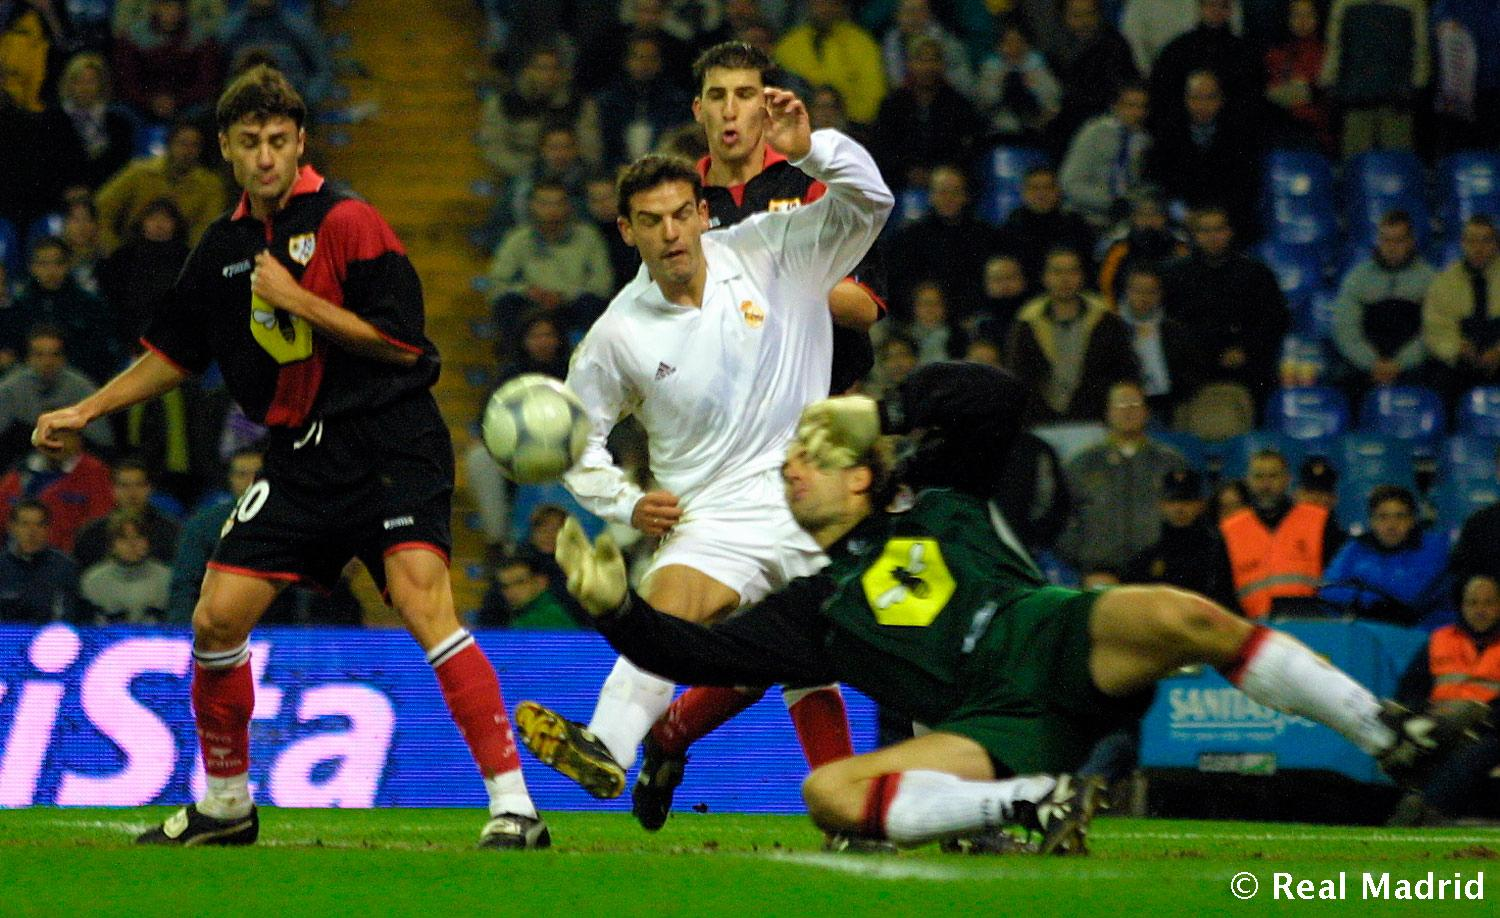 Real Madrid - Morientes 2 - 03-04-2015